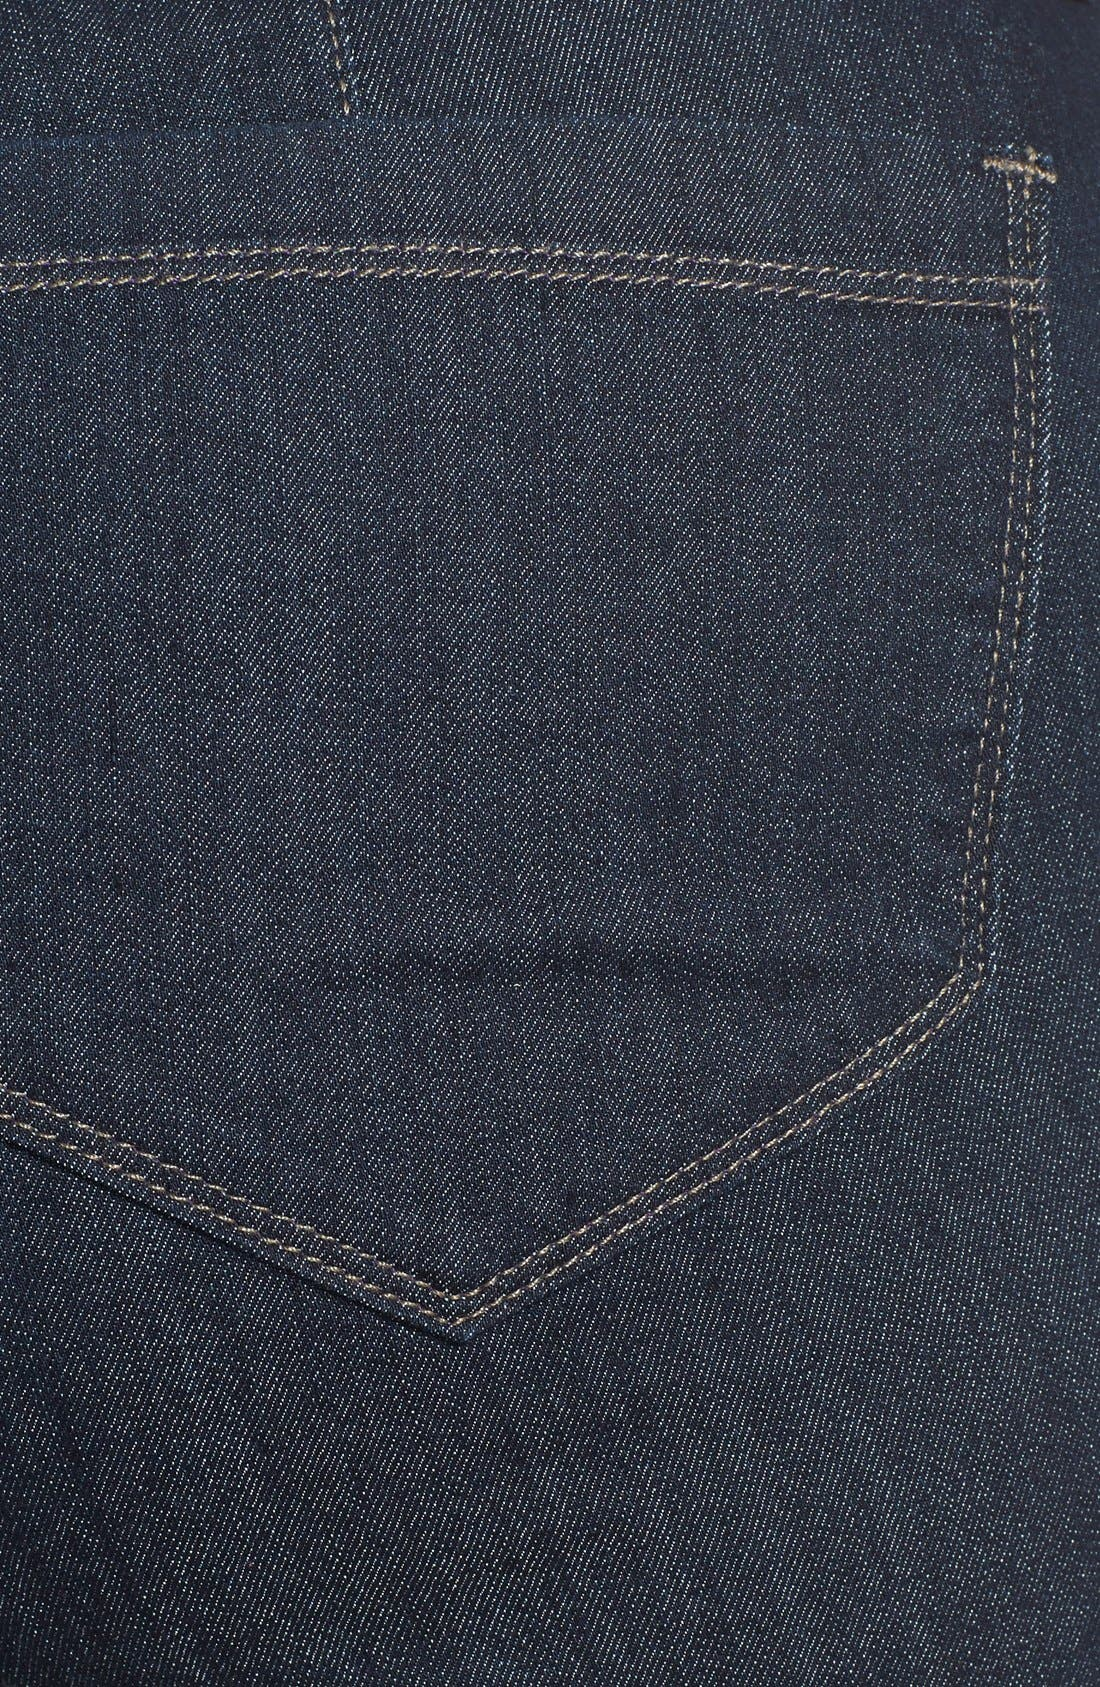 'Isabella' Stretch Trouser Jeans,                             Alternate thumbnail 3, color,                             Dark Enzyme